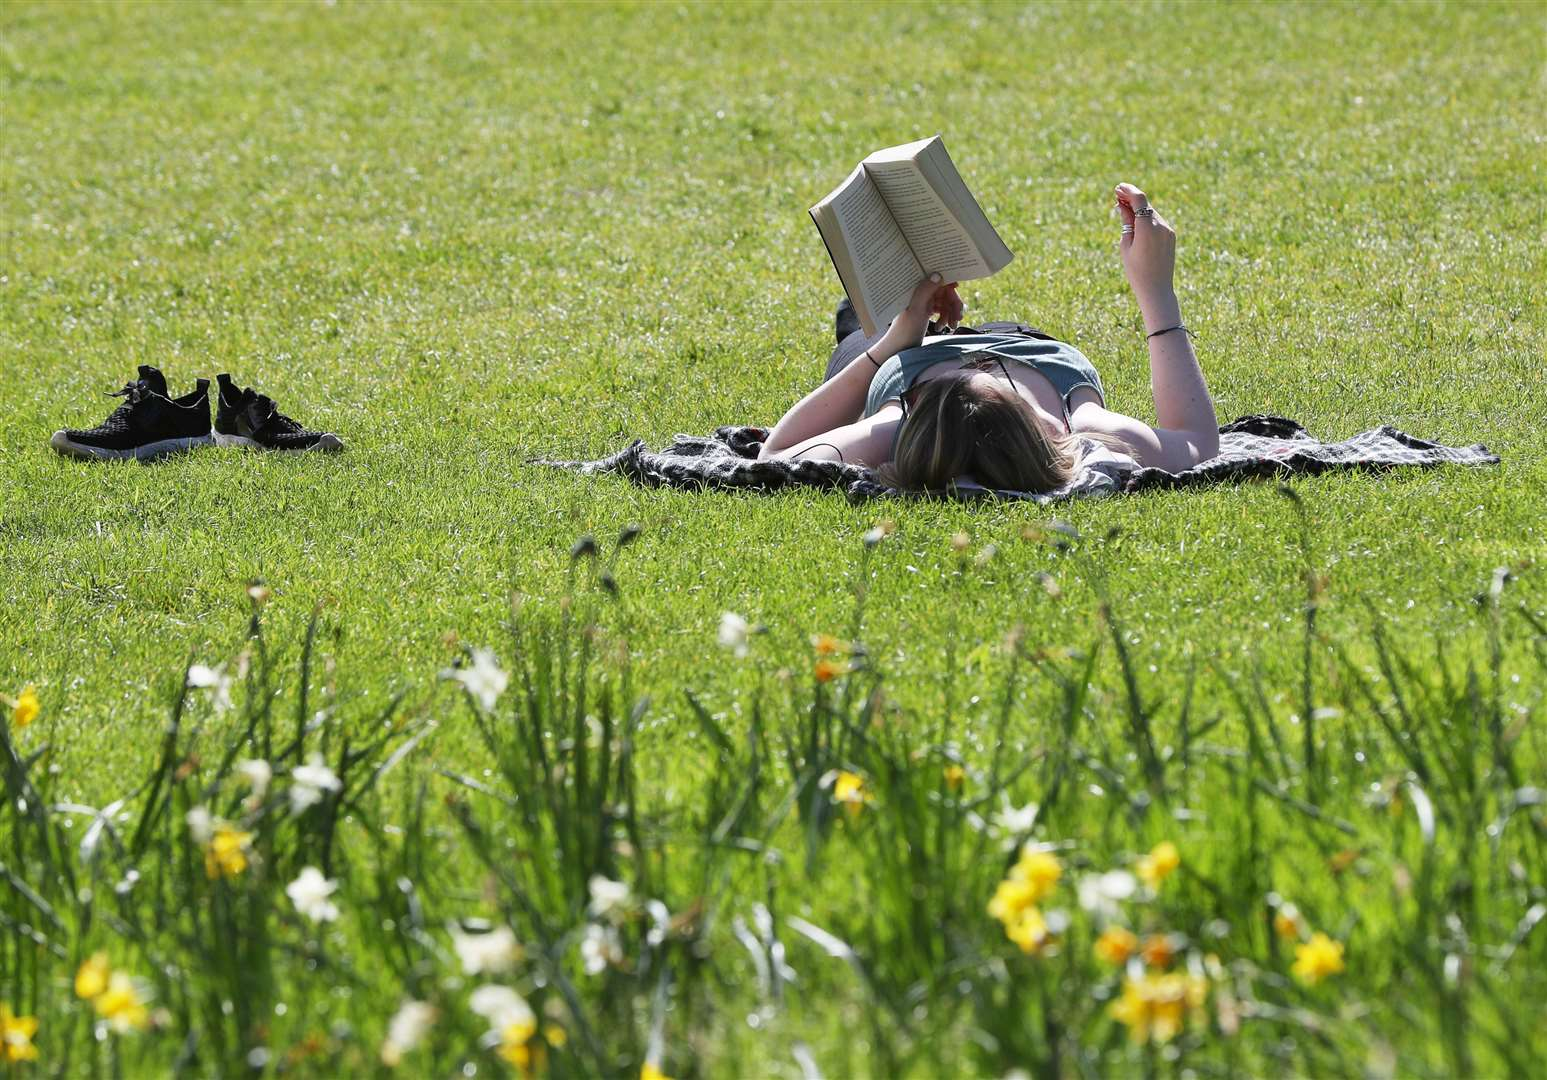 The hot weather is expected to hit the heatwave threshold - when high temperatures are sustained for three days.